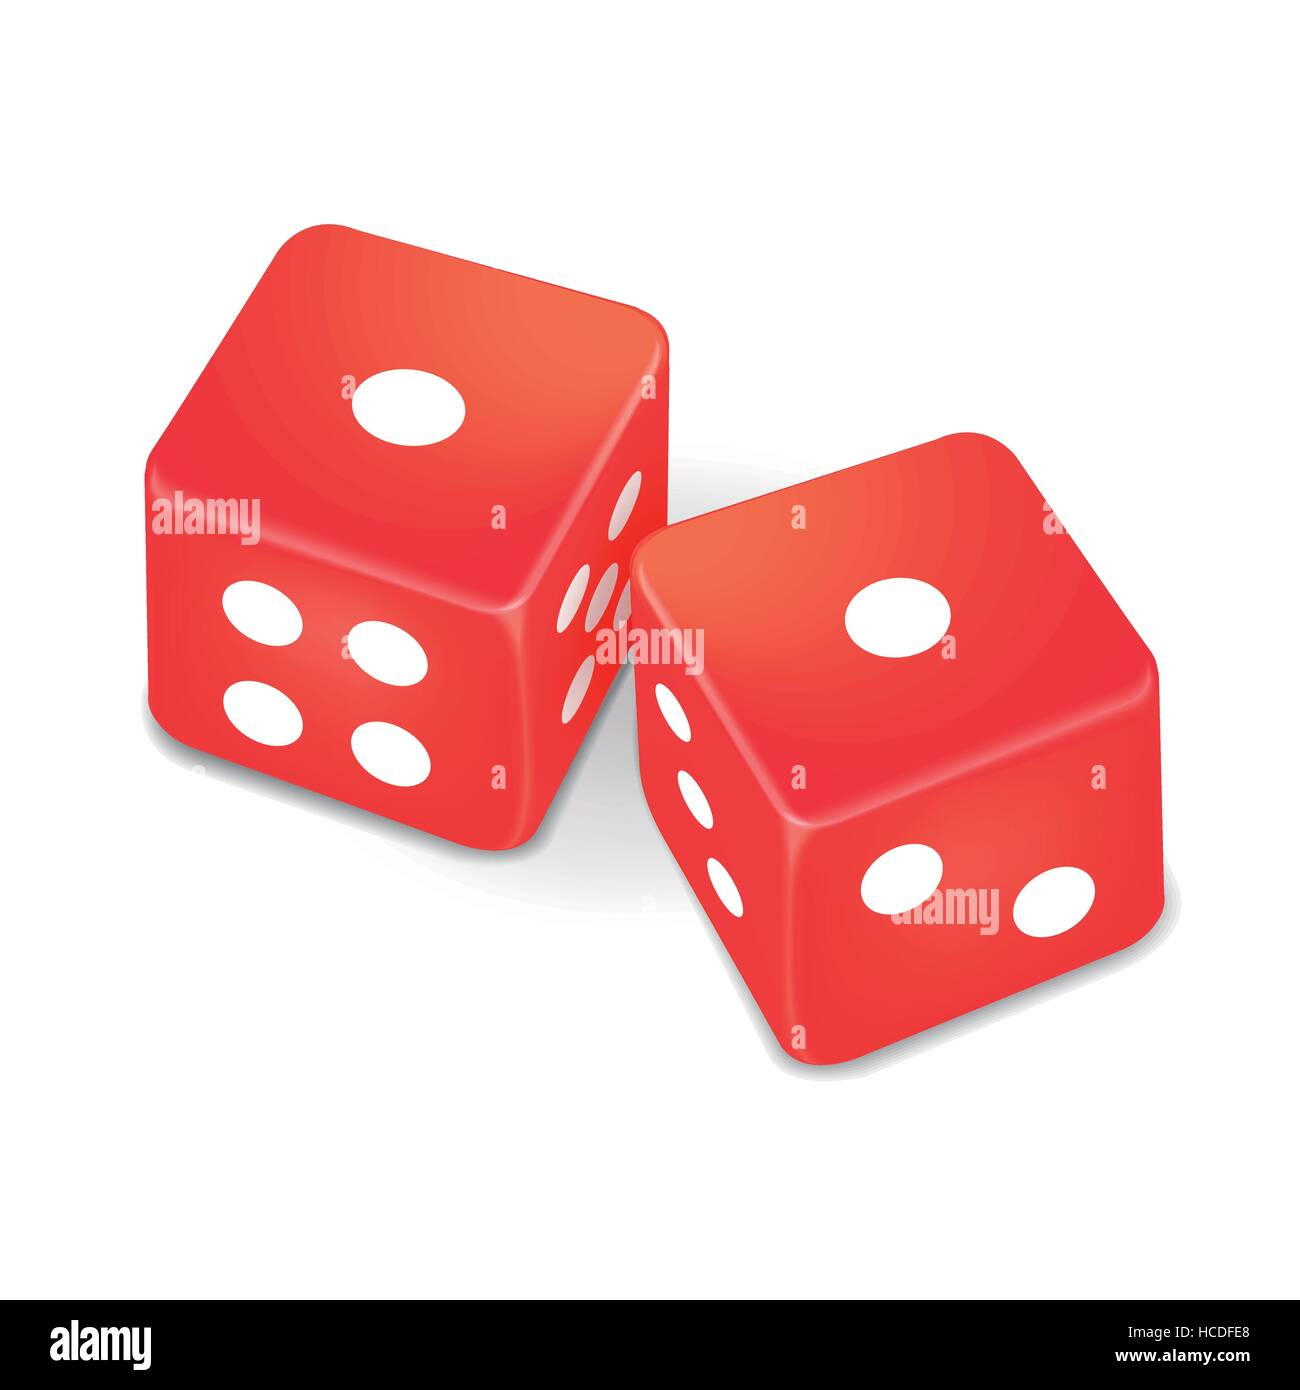 two red dice isolated on white background - Stock Image